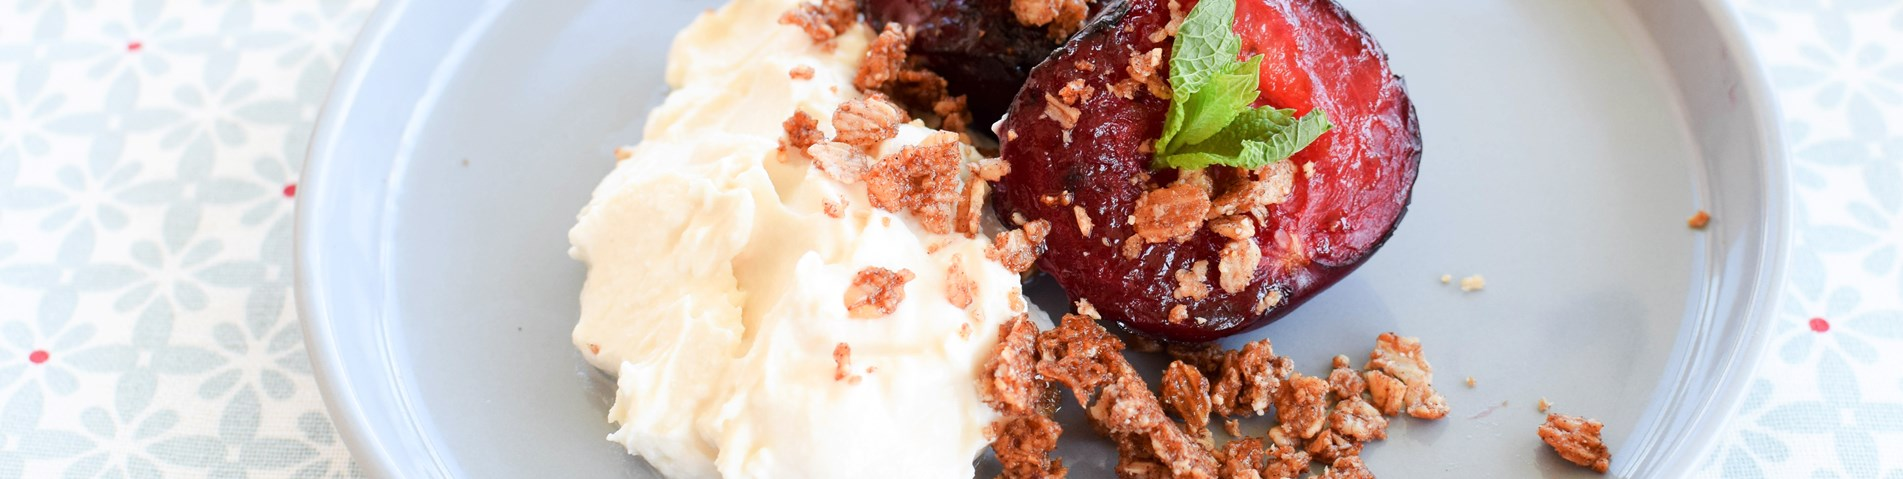 Organix - Roasted Plums & Oats Crumble.jpg